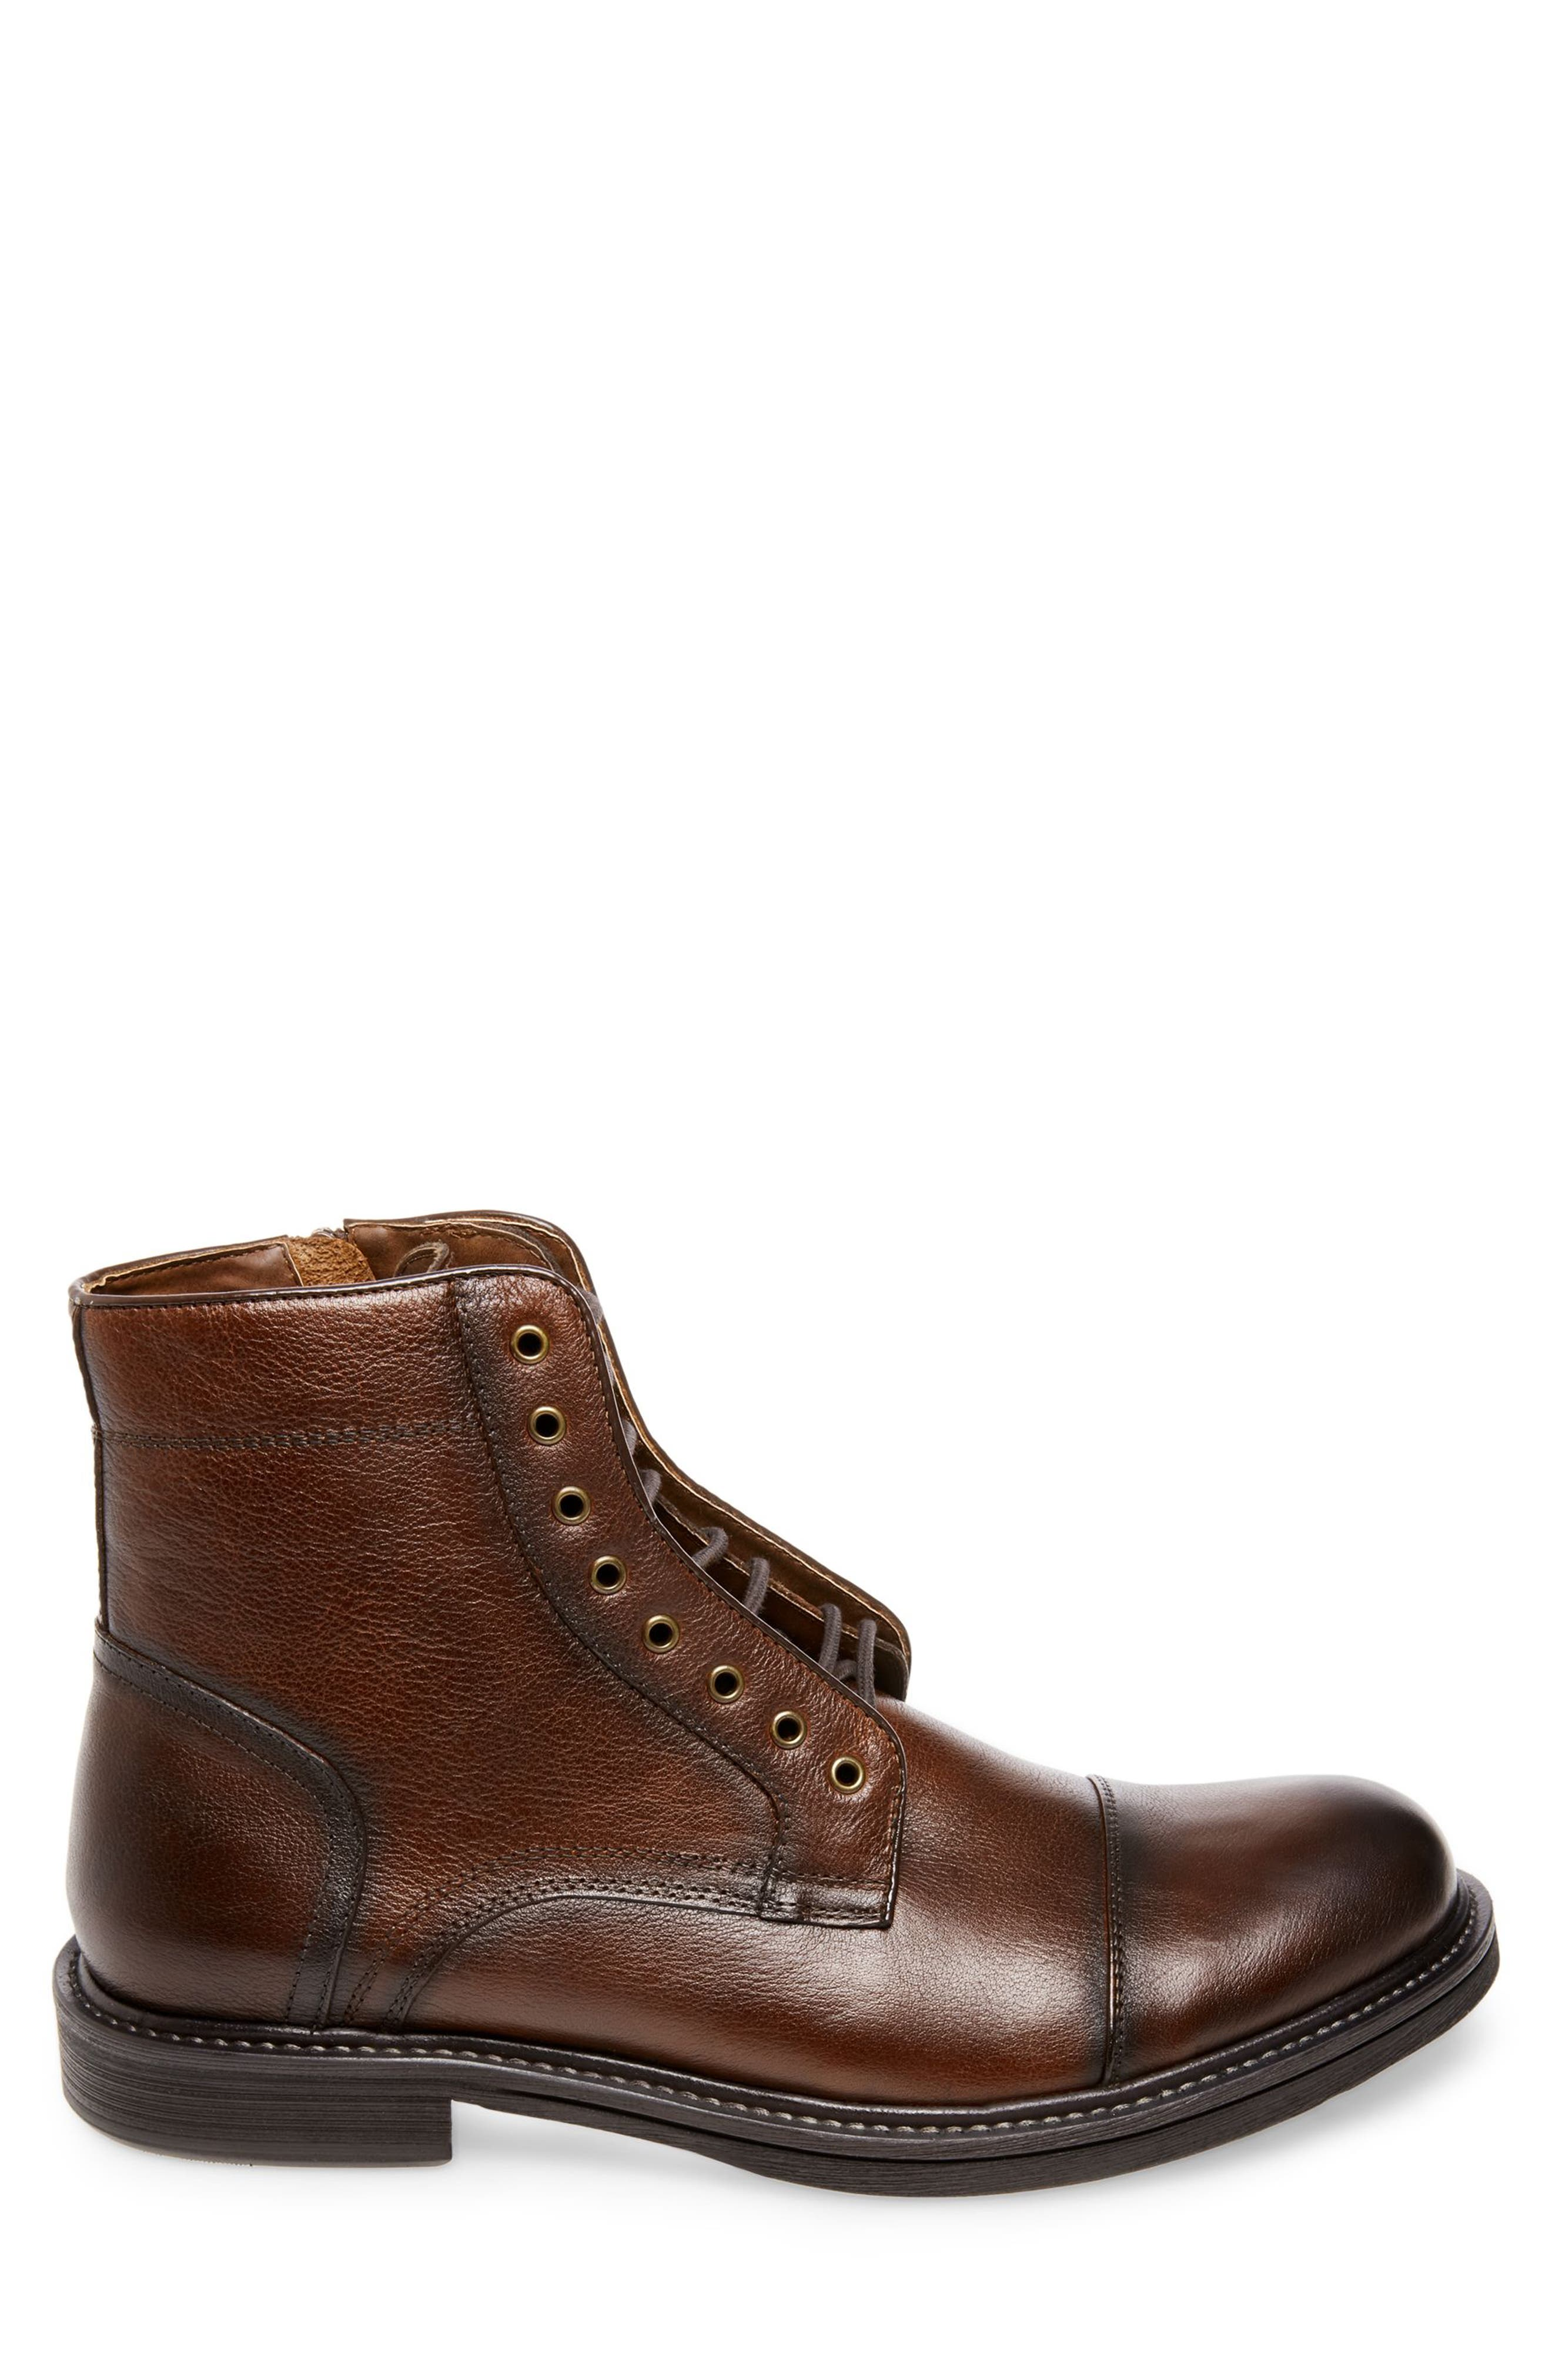 Chariot Boot,                             Alternate thumbnail 2, color,                             COGNAC LEATHER